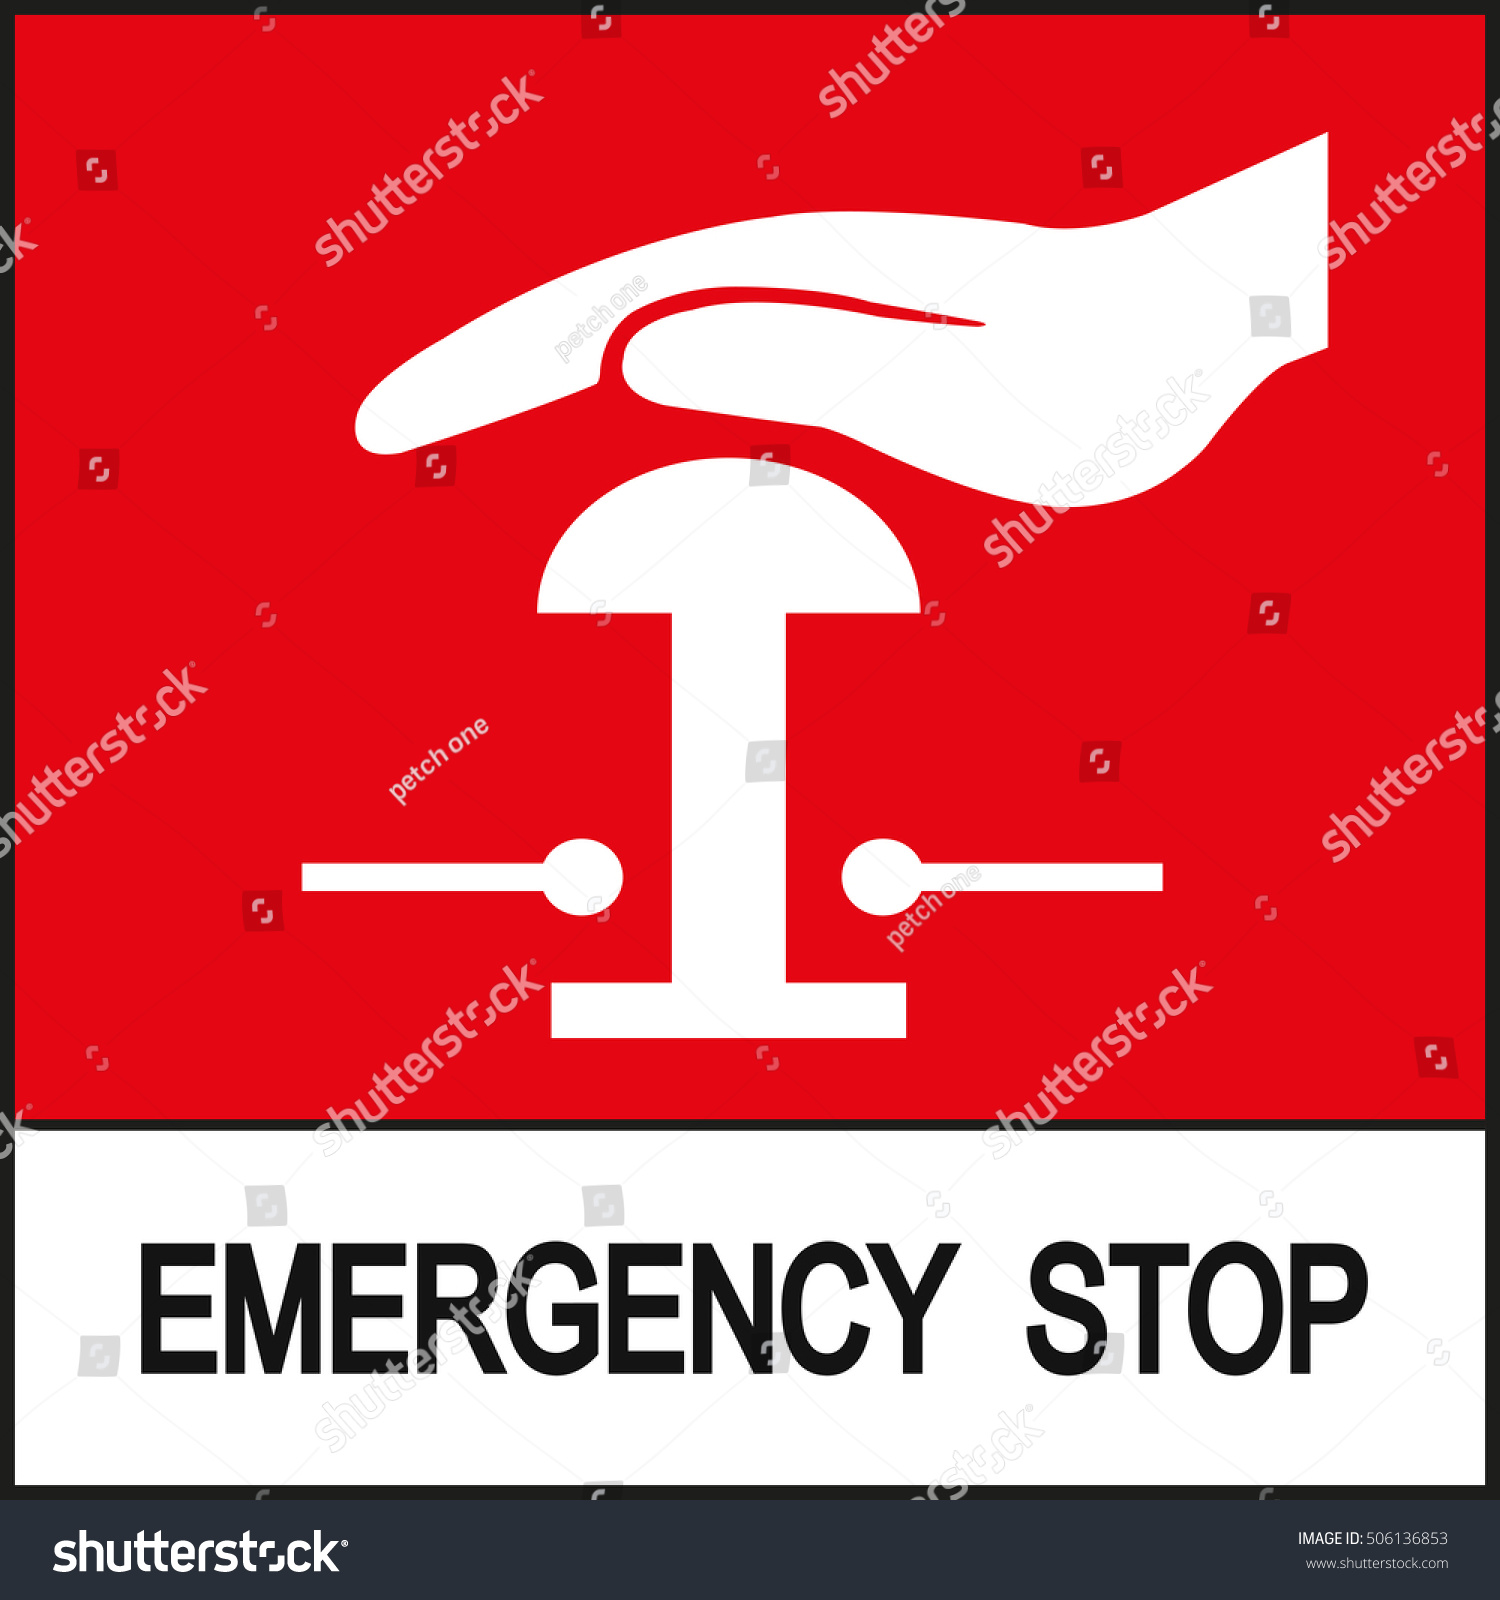 Emergency stop icon clipart emergency off - Emergency Stop Sign